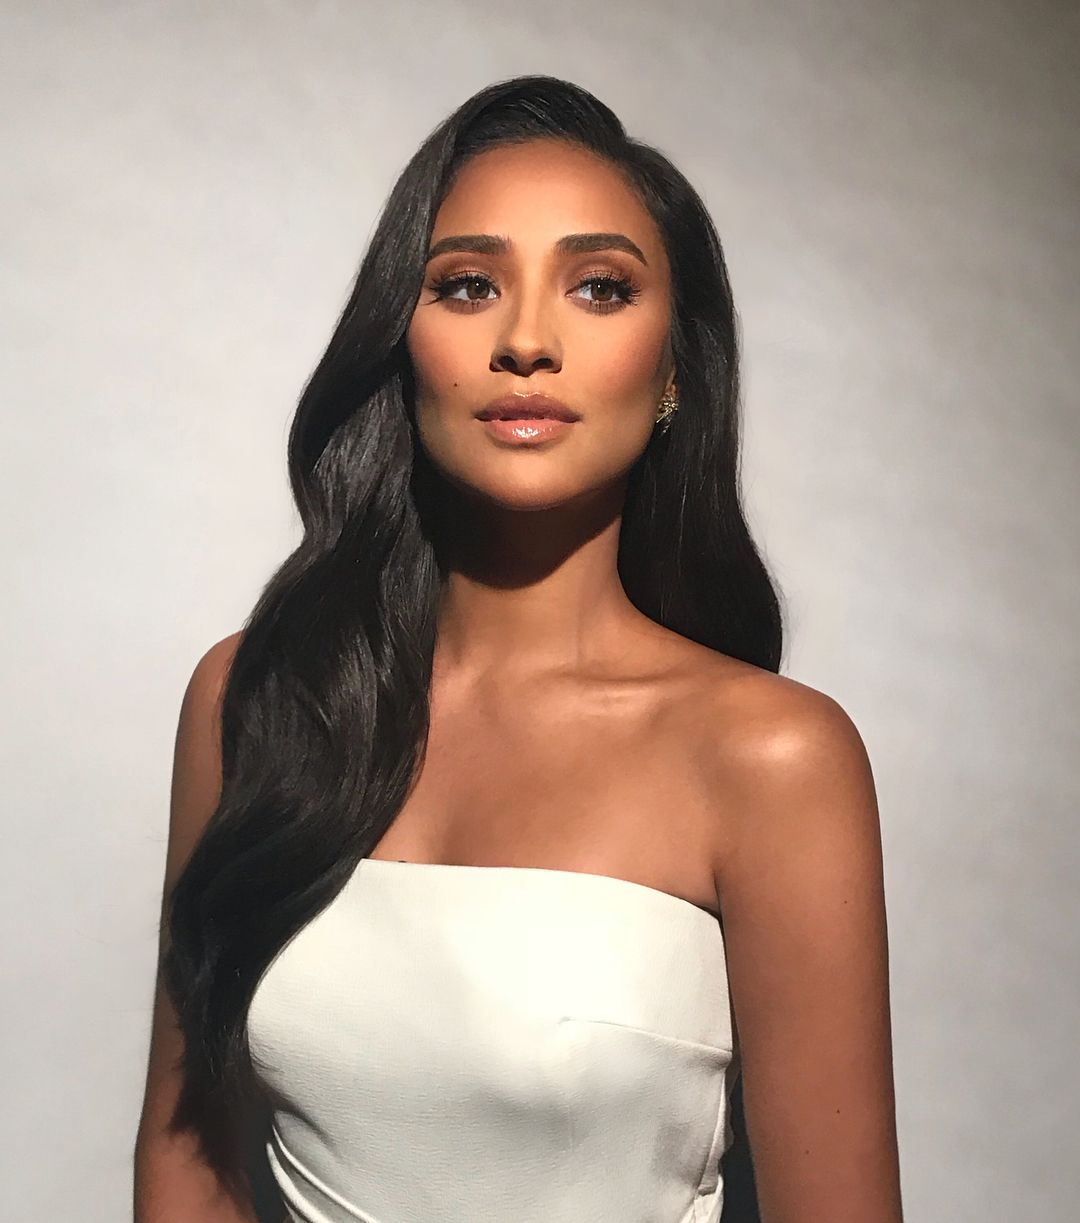 Shay Mitchell posing in makeup.